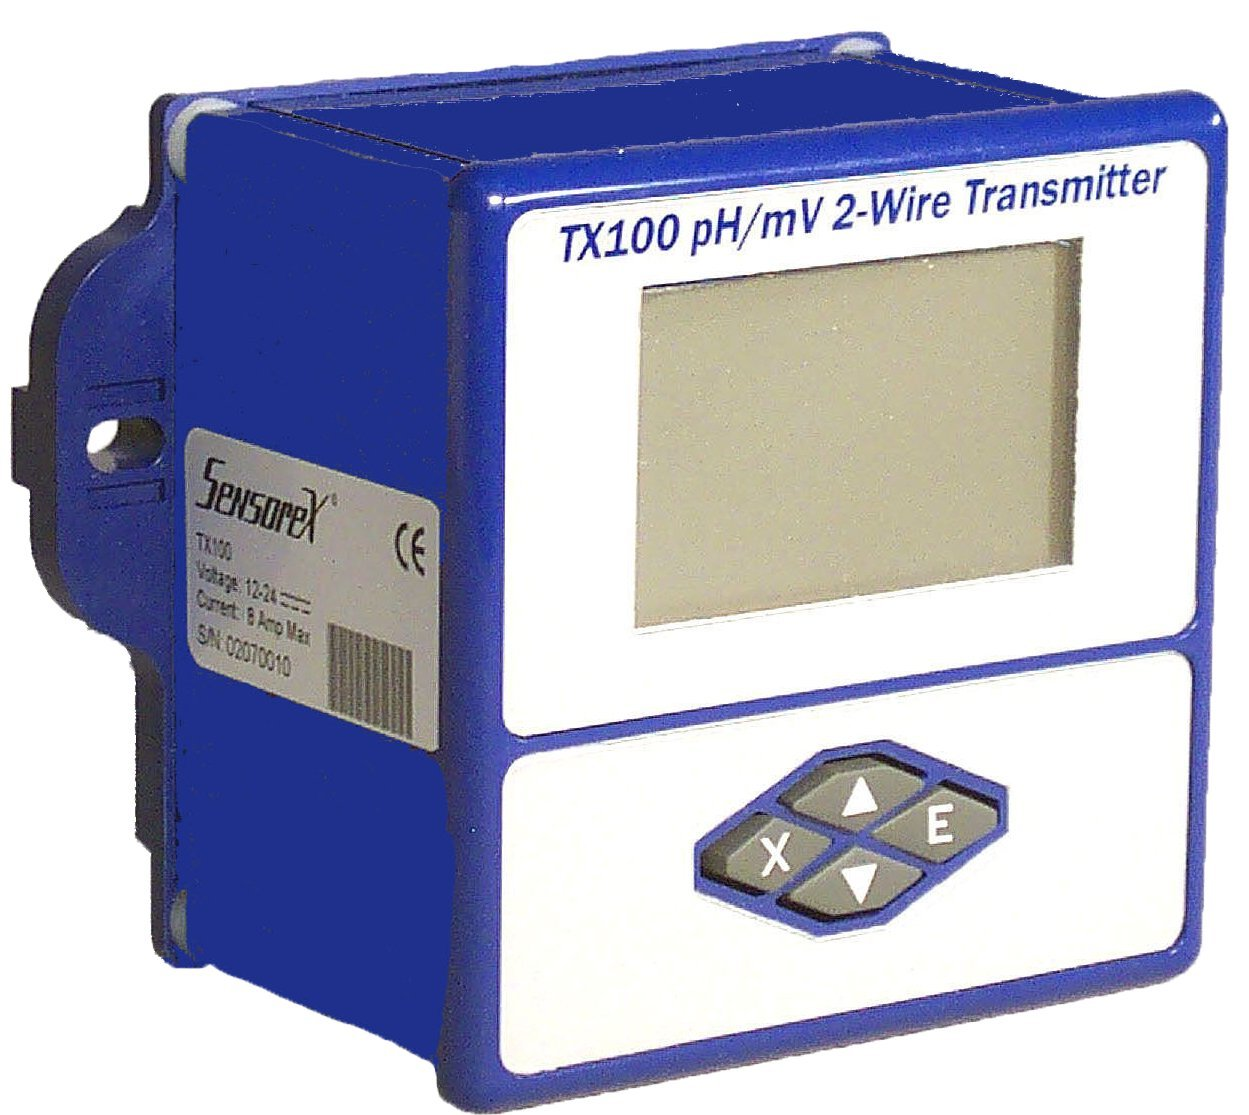 Loop-Powered 4-20mA Transmitter for Use with pH and ORP Electrodes and Sensors, Sensorex TX100 pH/mV by Sensorex